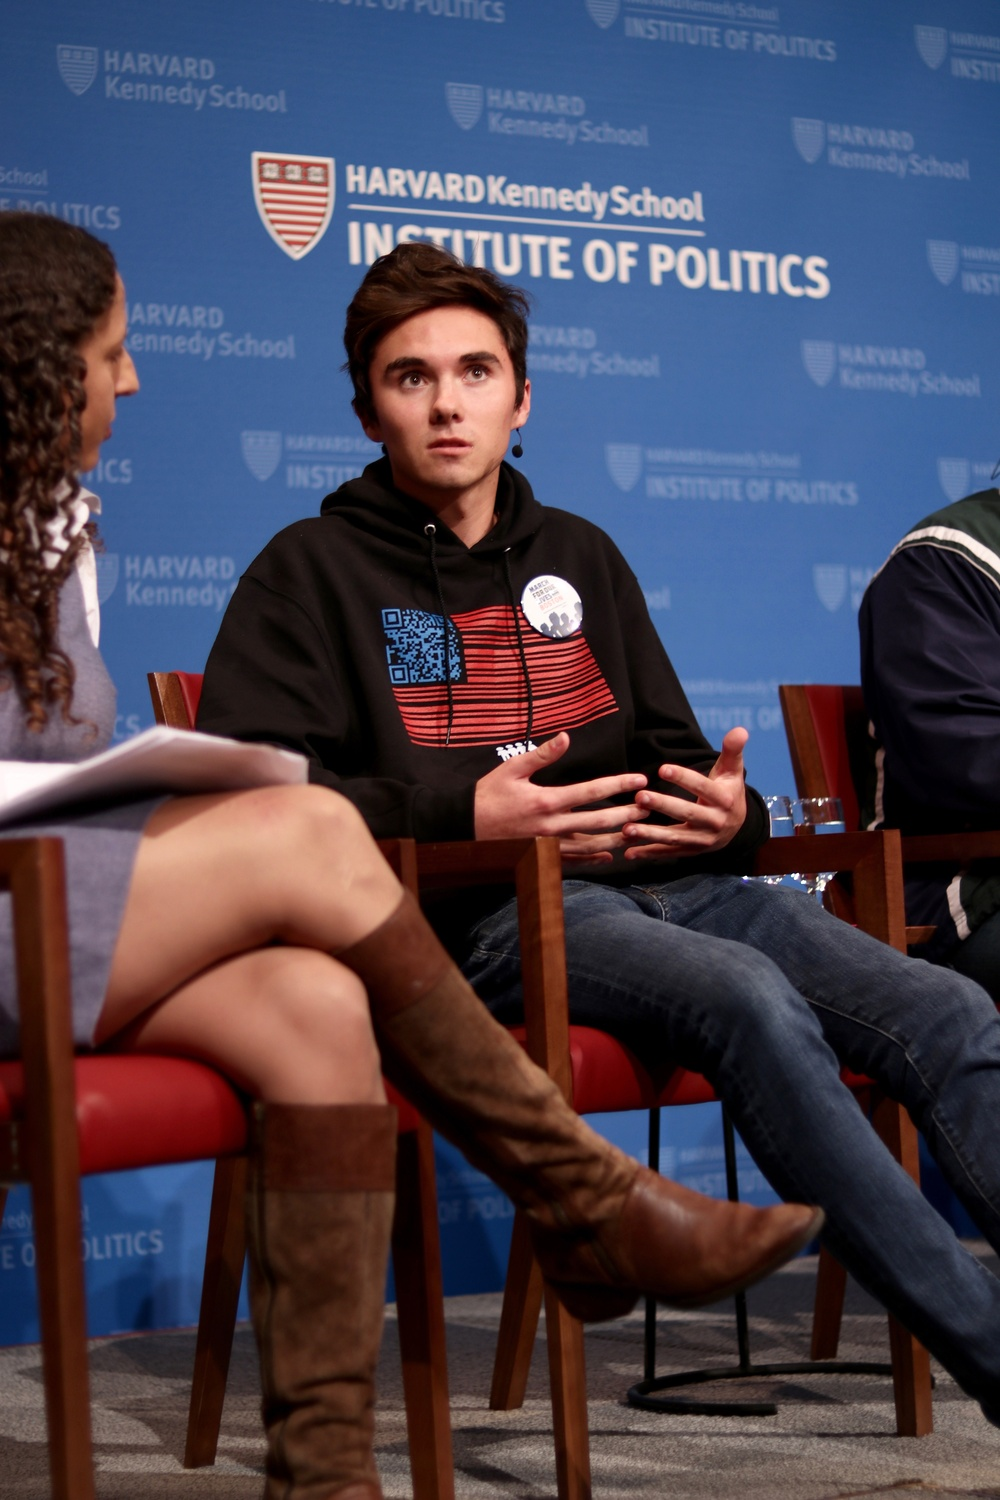 Harvard Votes Challenge — which aims to boost voter turnout among students — hosted a panel of students activists at the Institute of Politics.